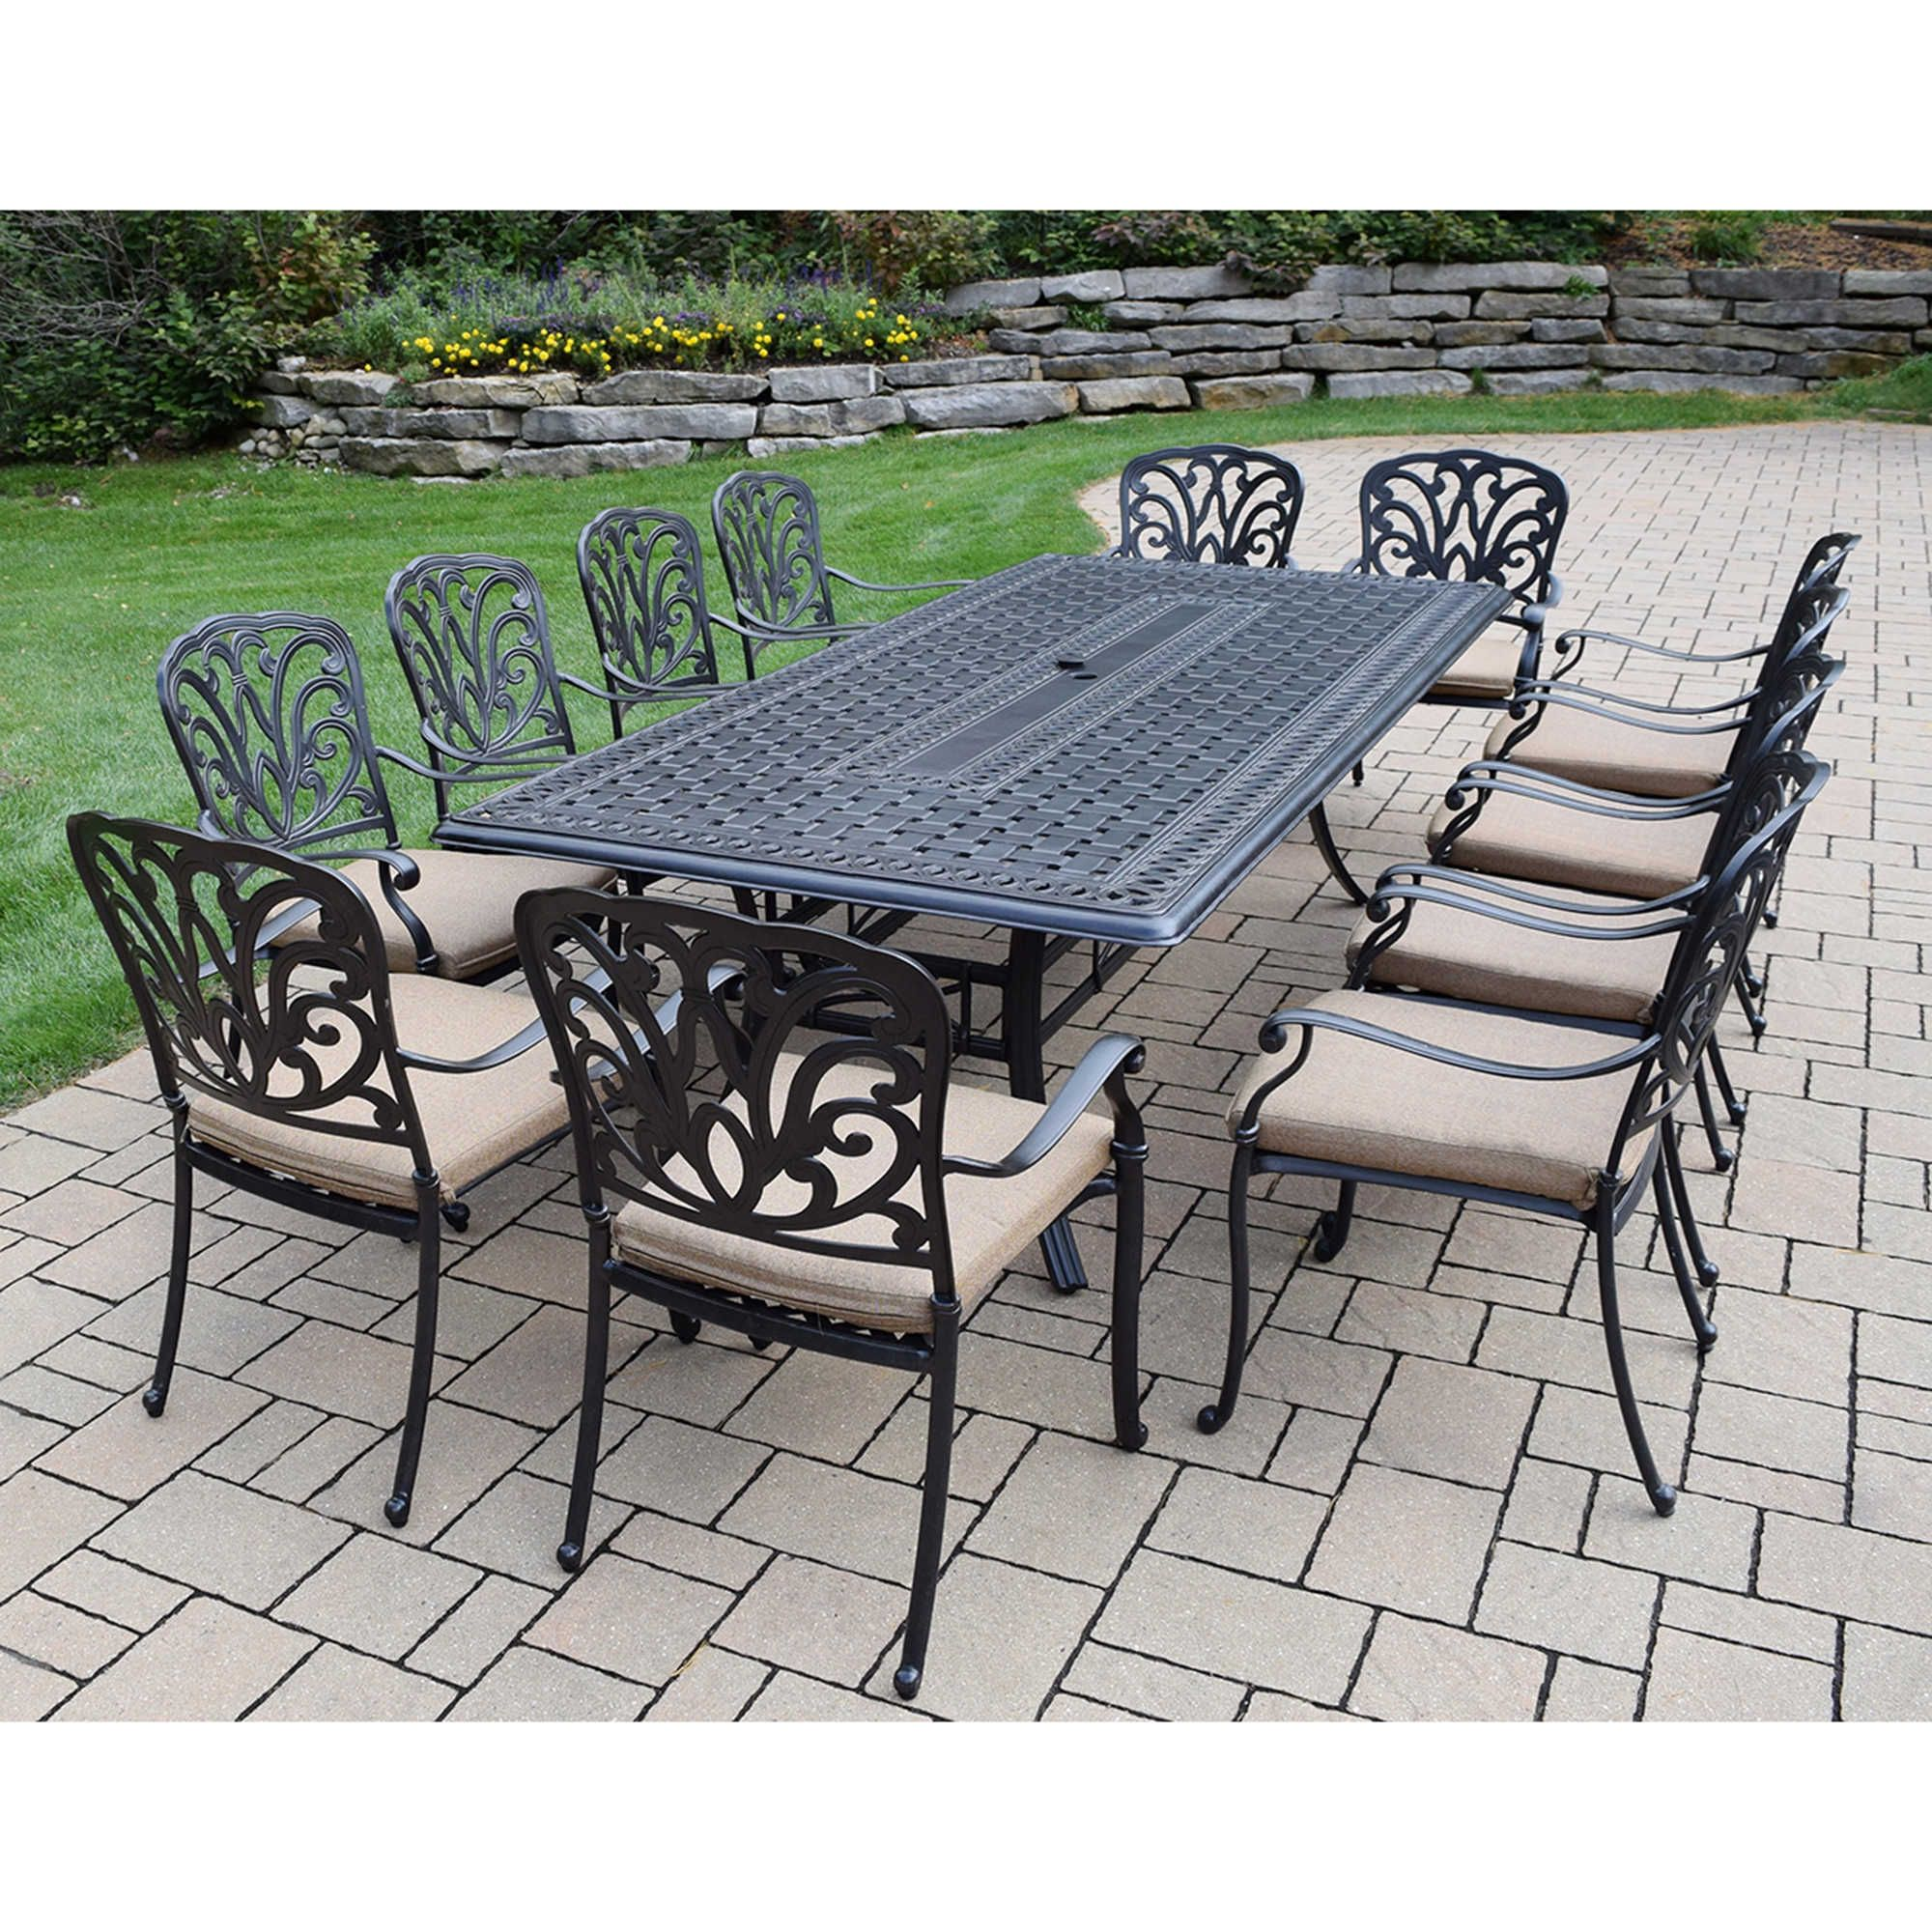 Oakland Living Clairmont 13-Piece Outdoor Dining Set ... on Oakland Living Patio Sets id=73105